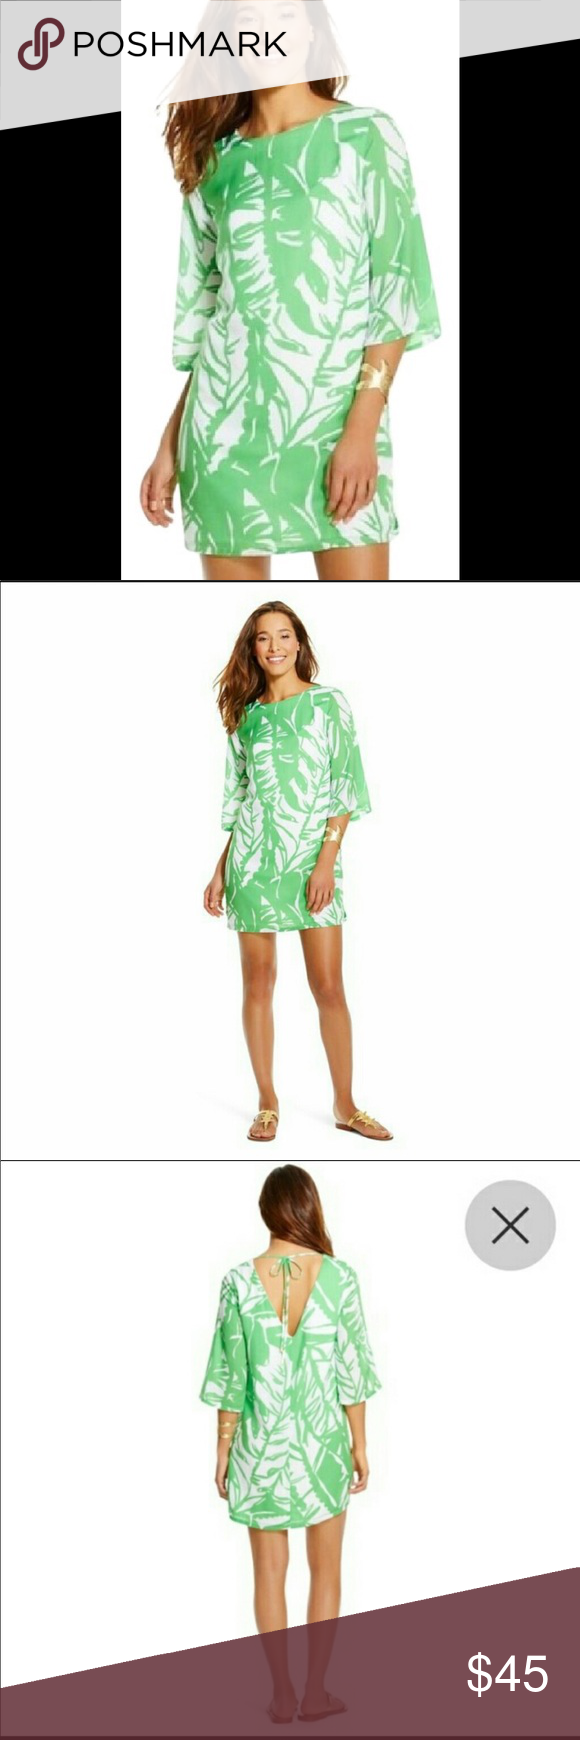 Lilly Pulitzer For Target Palm Beach Perfect Dress Perfect Dress Lilly Pulitzer Target Lilly Pulitzer [ 1740 x 580 Pixel ]